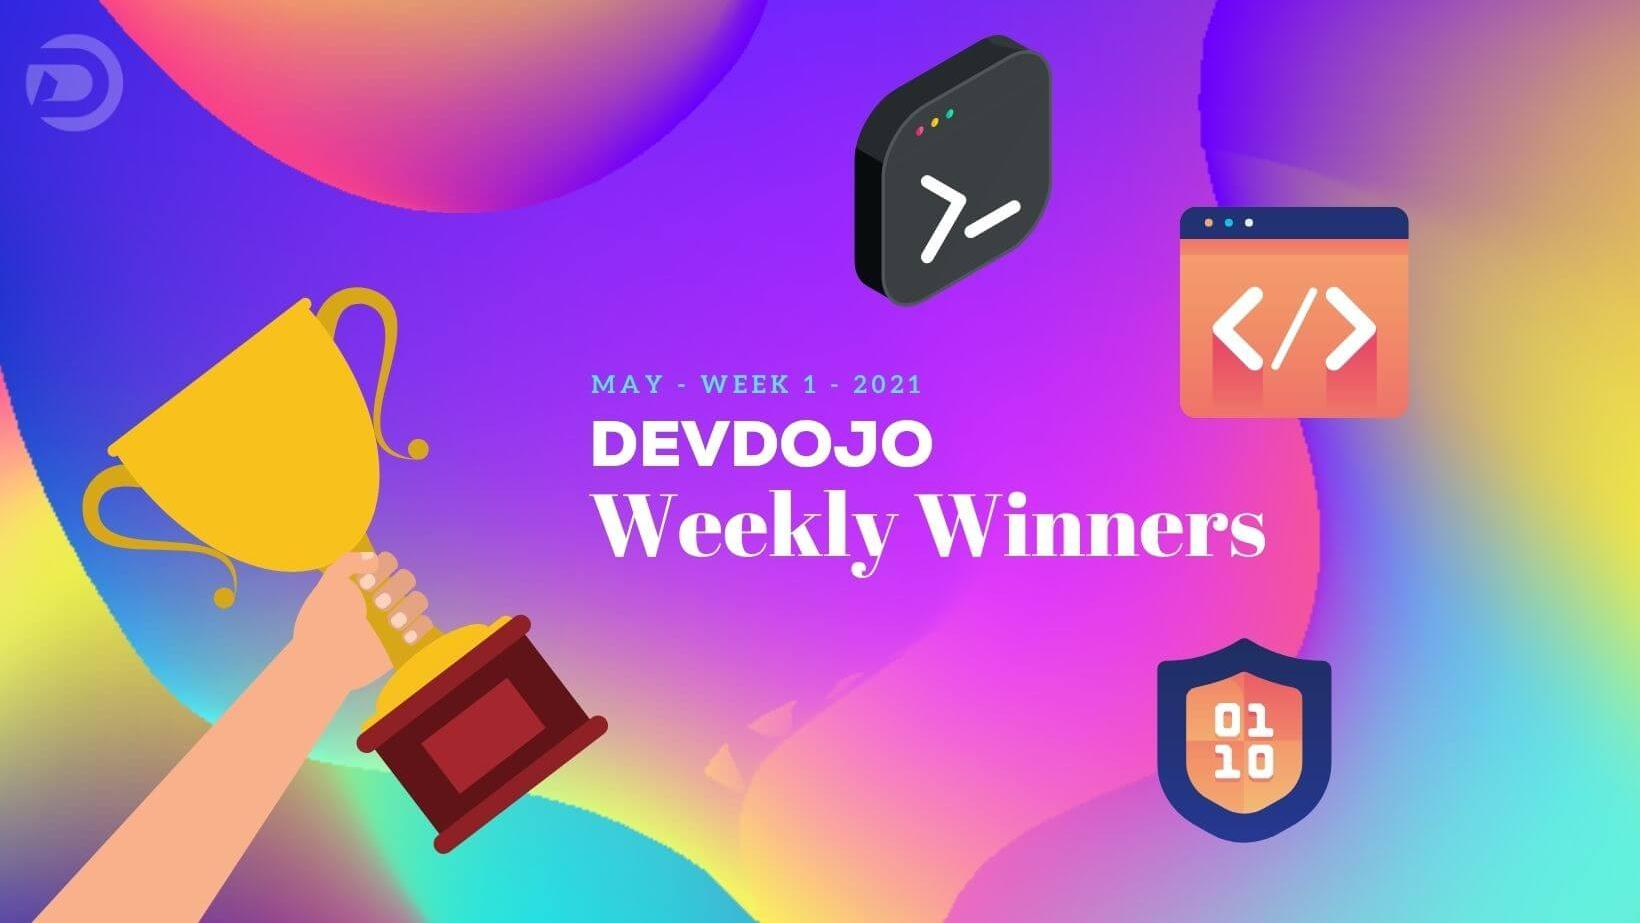 DevDojo Weekly Winners Week 1 May 2021